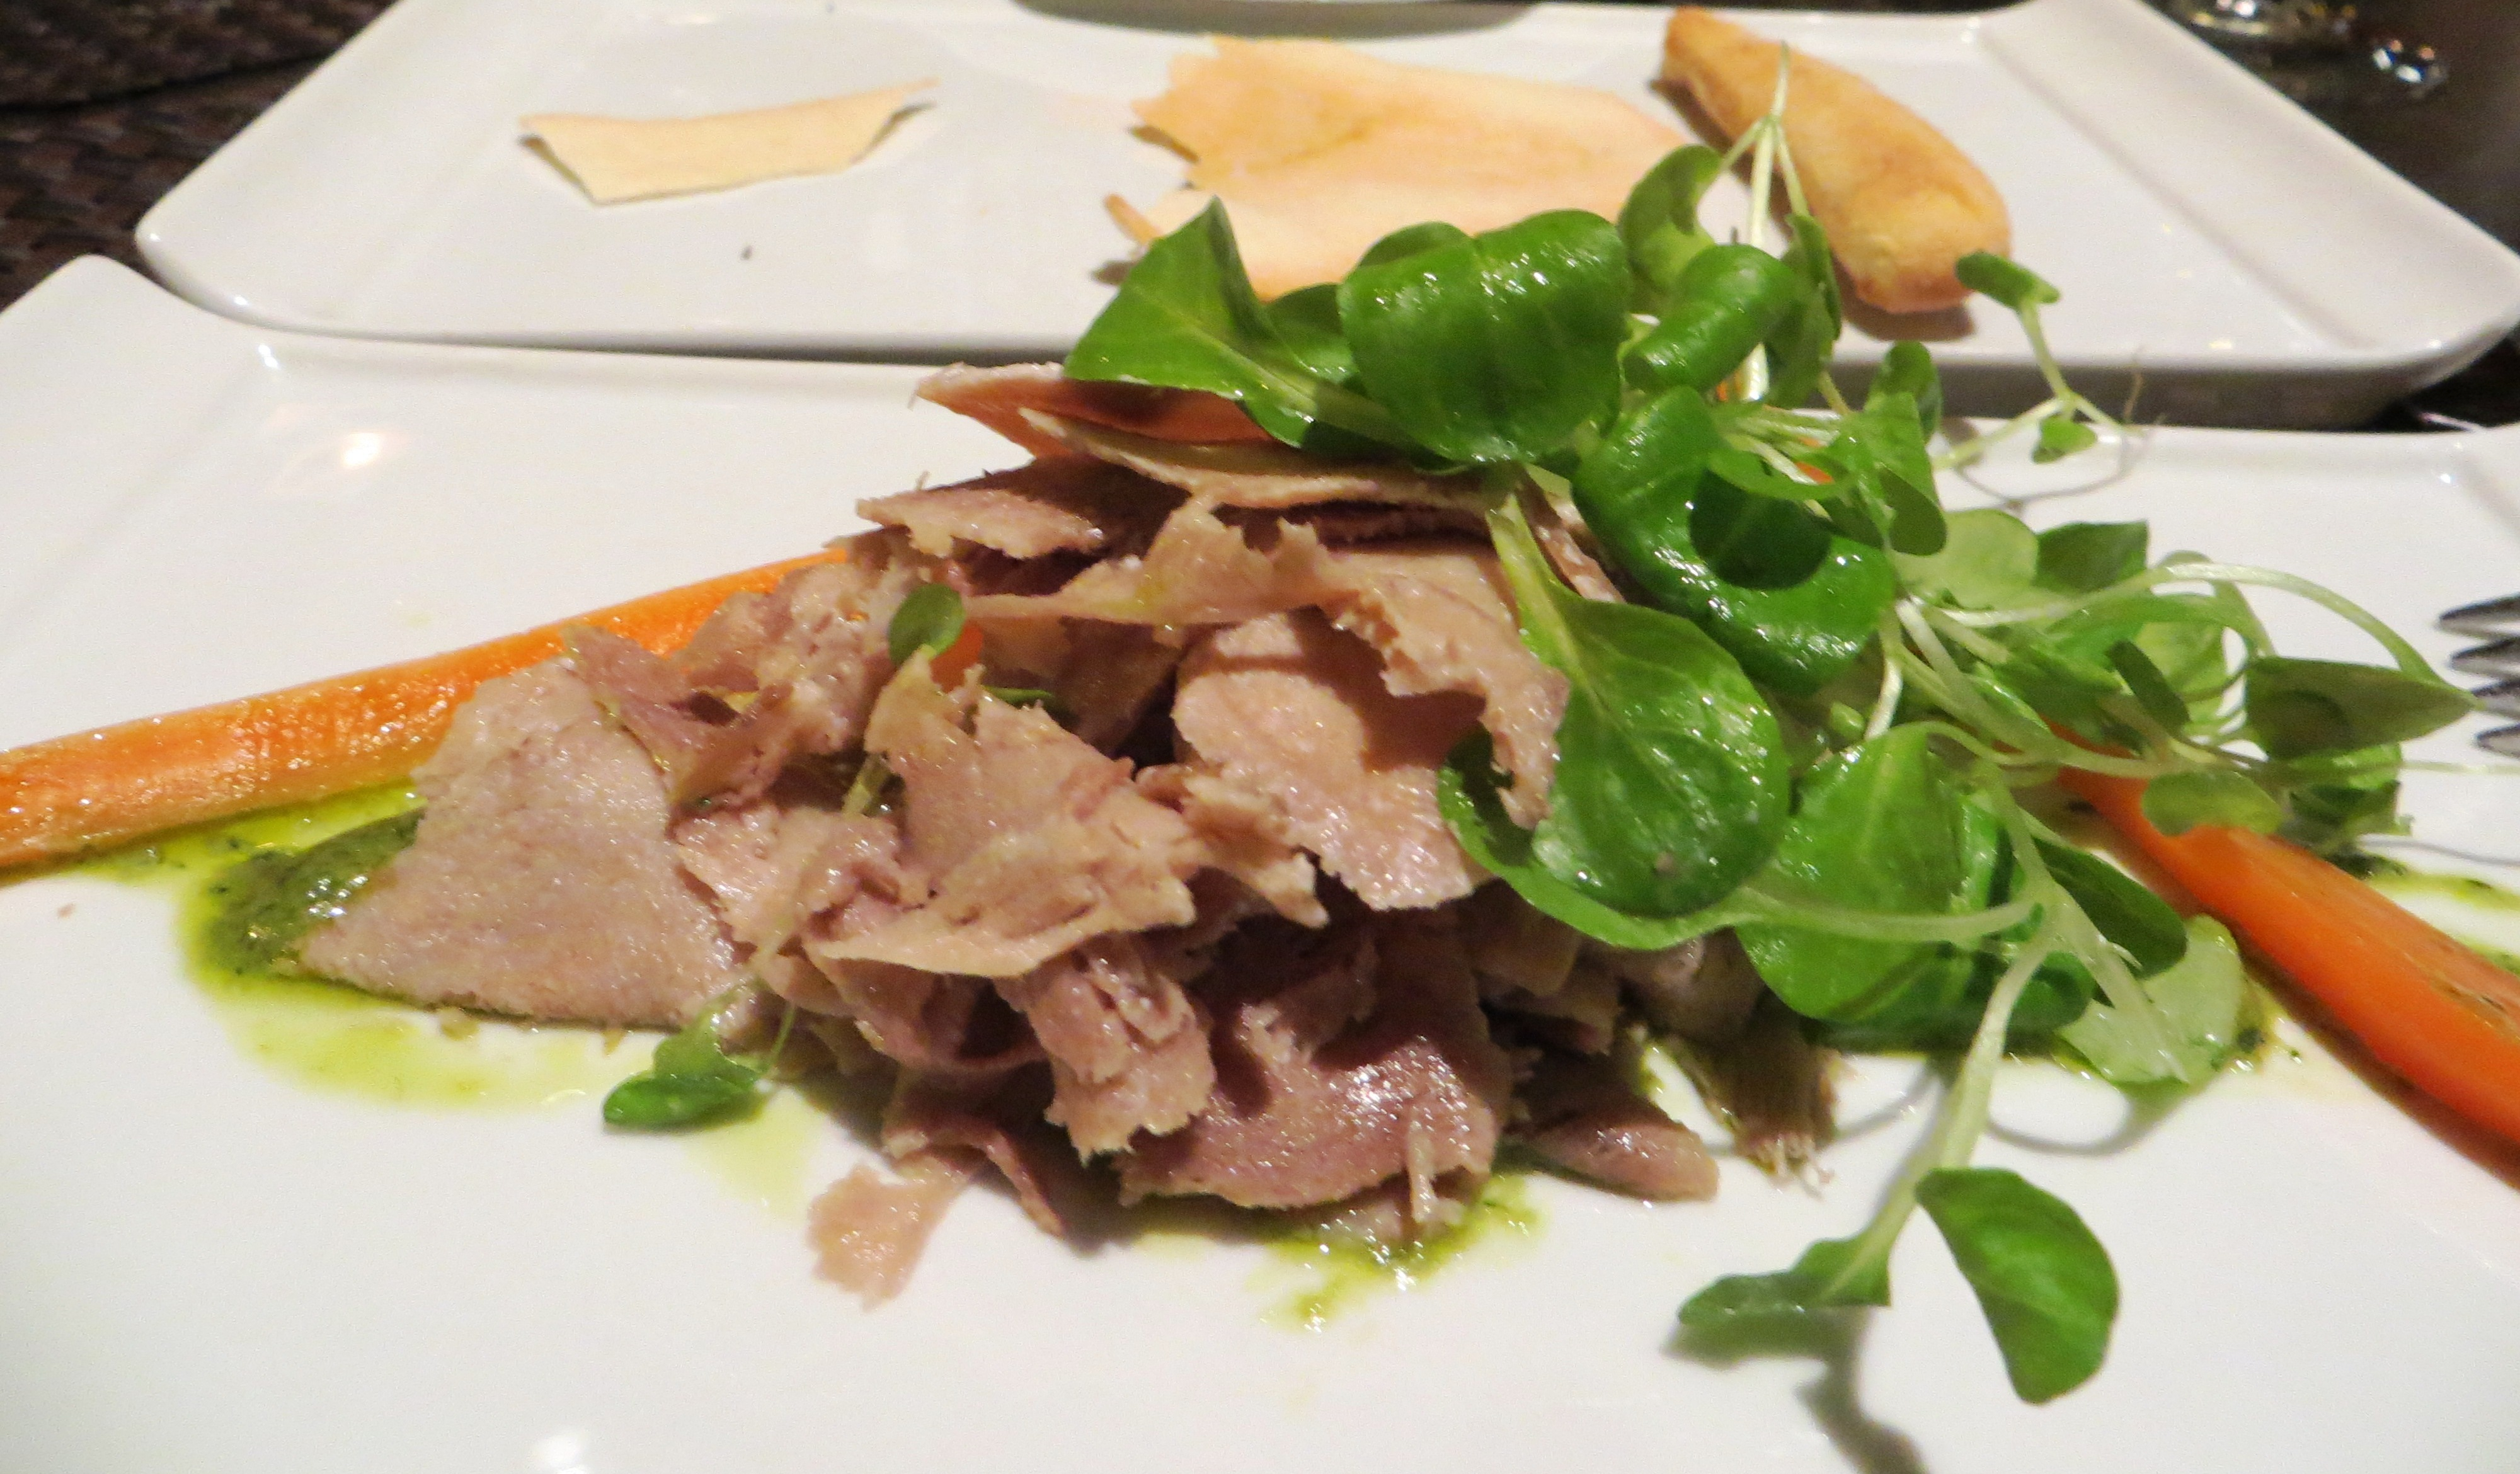 how to cook veal tongue